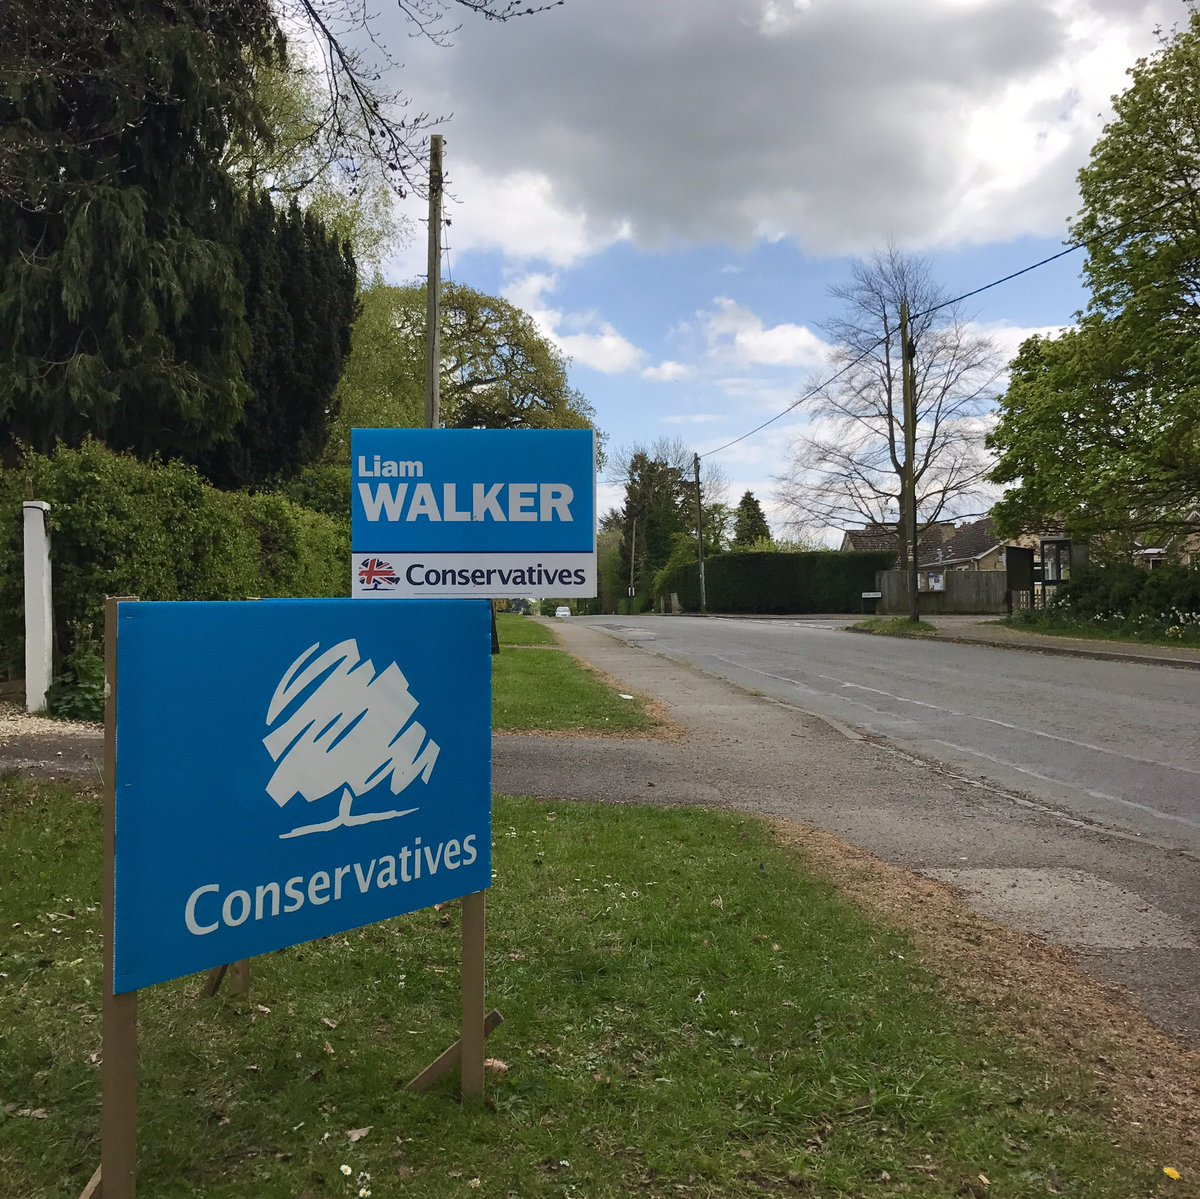 Another busy afternoon with @tobymorris decorating the Division with signs! #VoteConservative #Elections2017 <br>http://pic.twitter.com/BclbNPoDyT